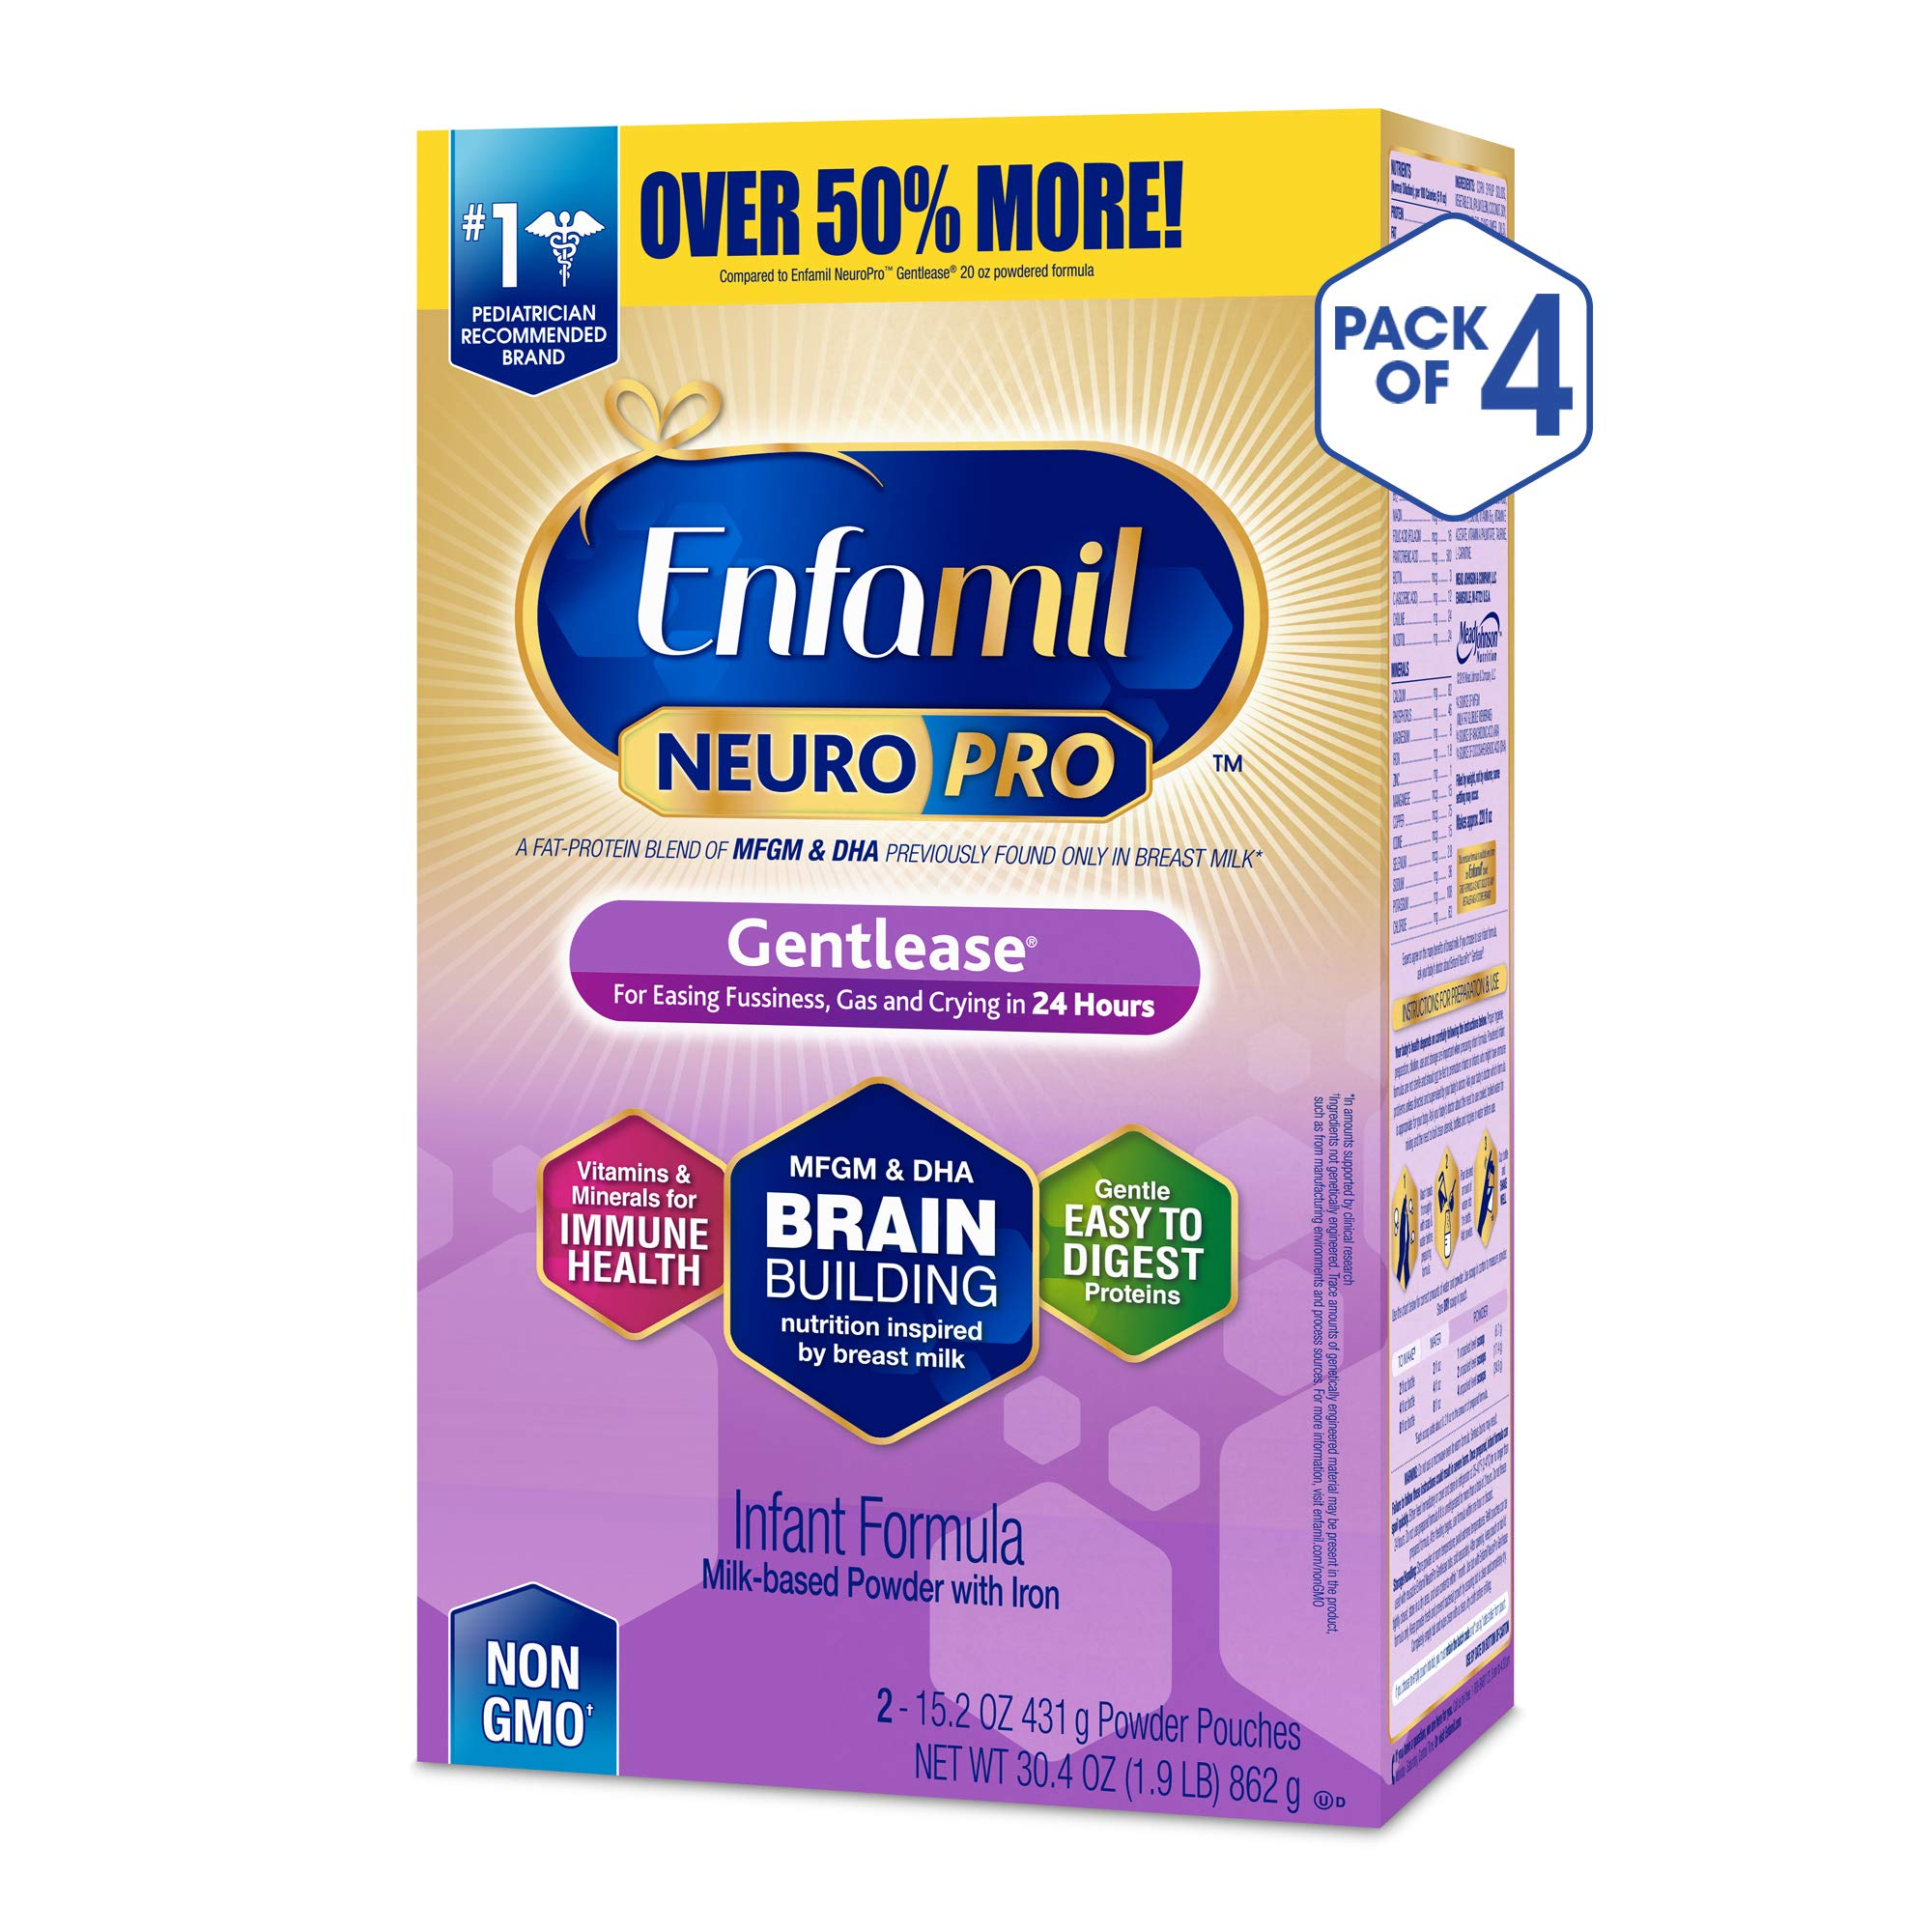 Enfamil NeuroPro Gentlease Infant Formula - Clinically Proven to reduce fussiness, gas, crying in 24 hours - Brain Building Nutrition Inspired by breast milk - Powder Refill Box, 30.4 oz (Pack of 4) by Enfamil (Image #1)